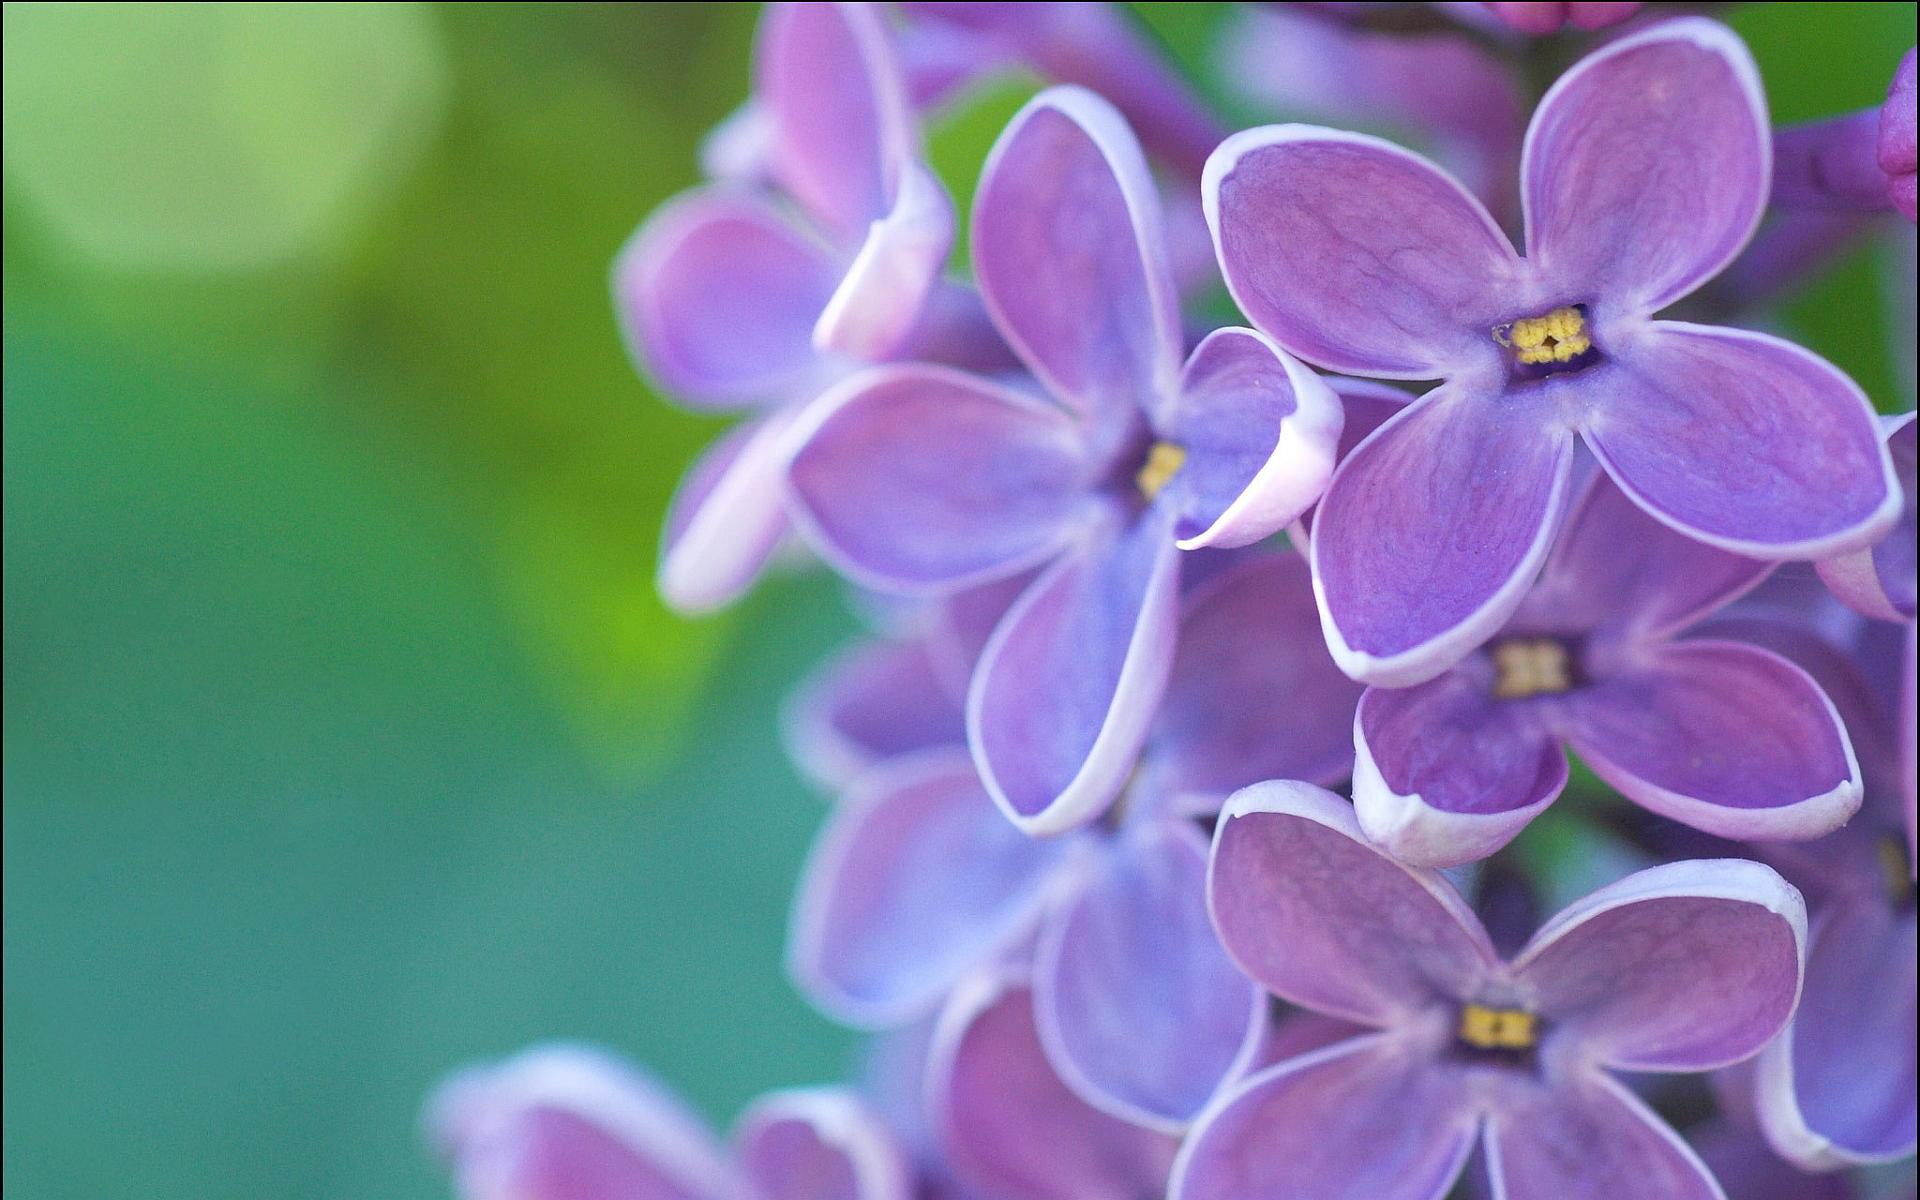 Lilac flowers hd